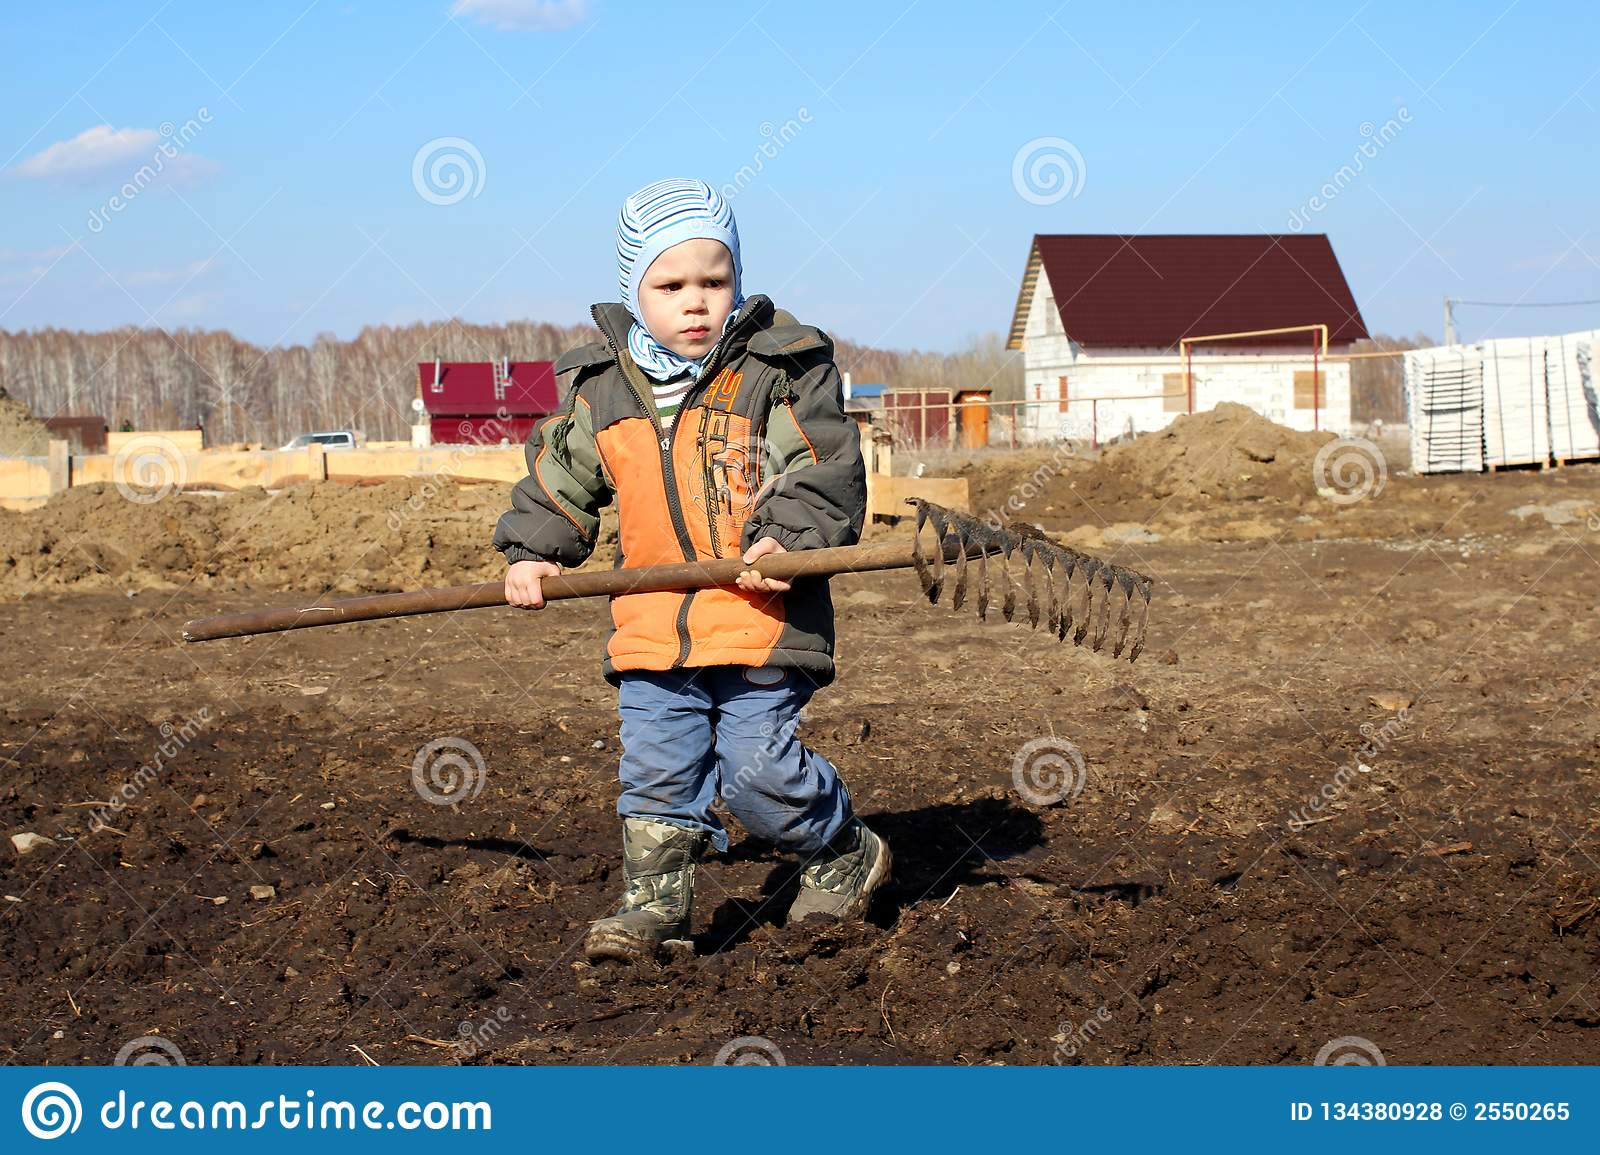 A little boy holding a large rake in his hands helps to work on the ground